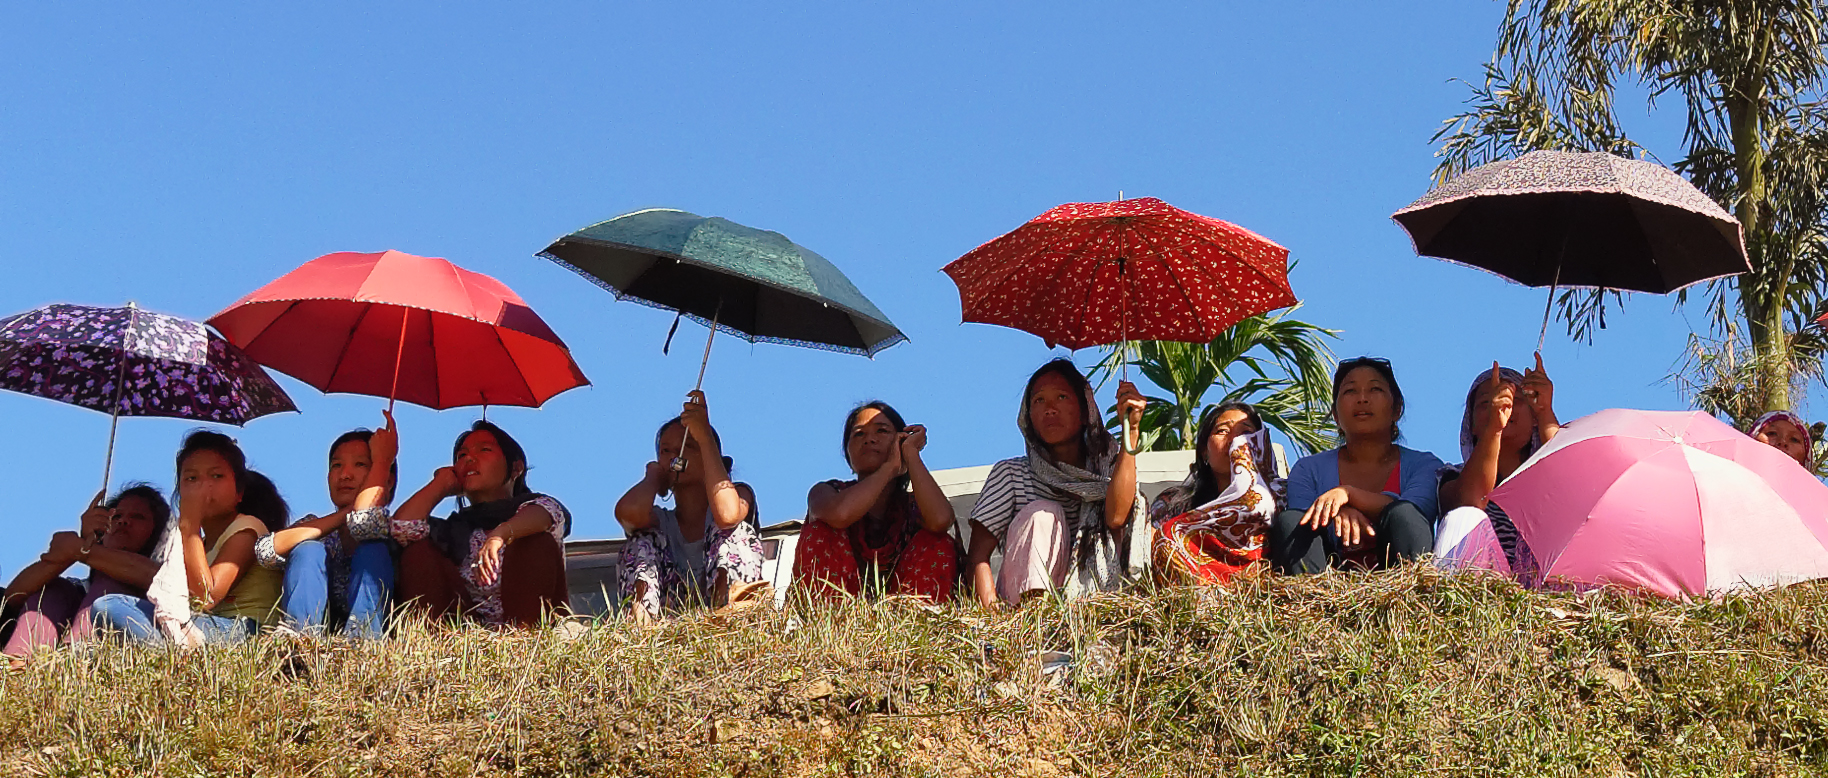 Women, shielding themselves from the hot sun, watch the match in Mon from a spot overlooking the field